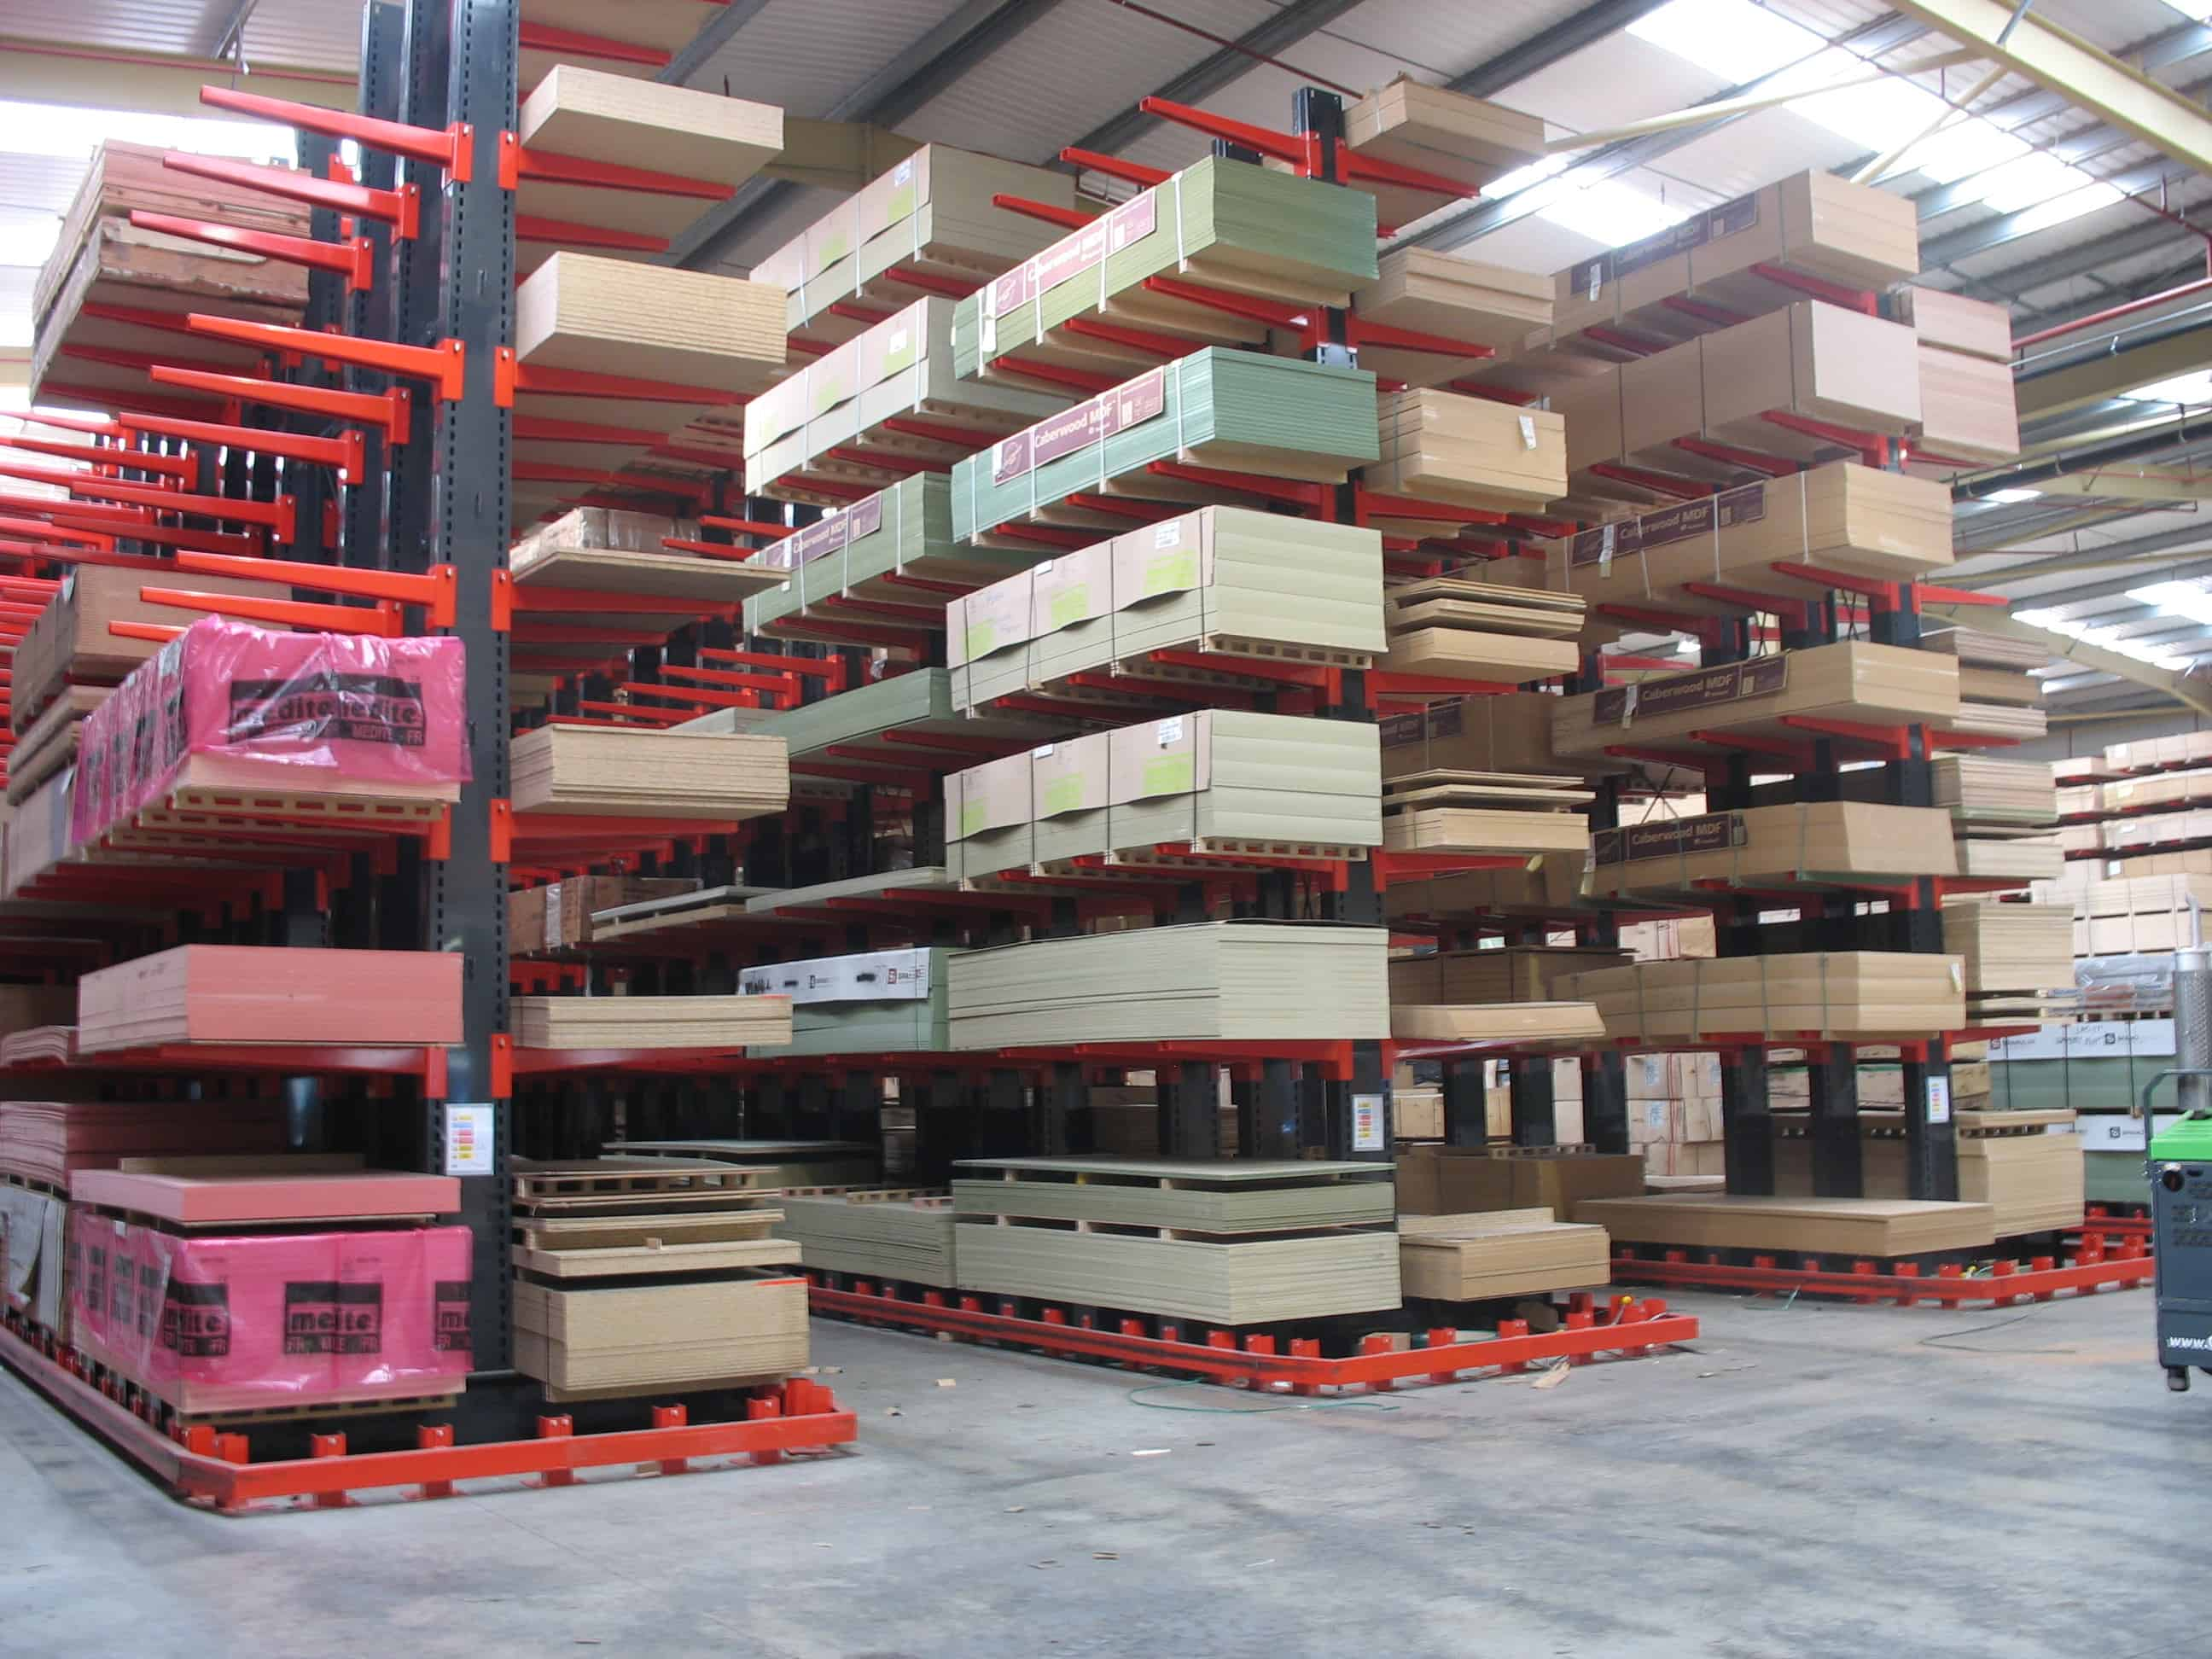 Cantilever Racking in a Guided Aisle format ensures dedicated aisles and gangways